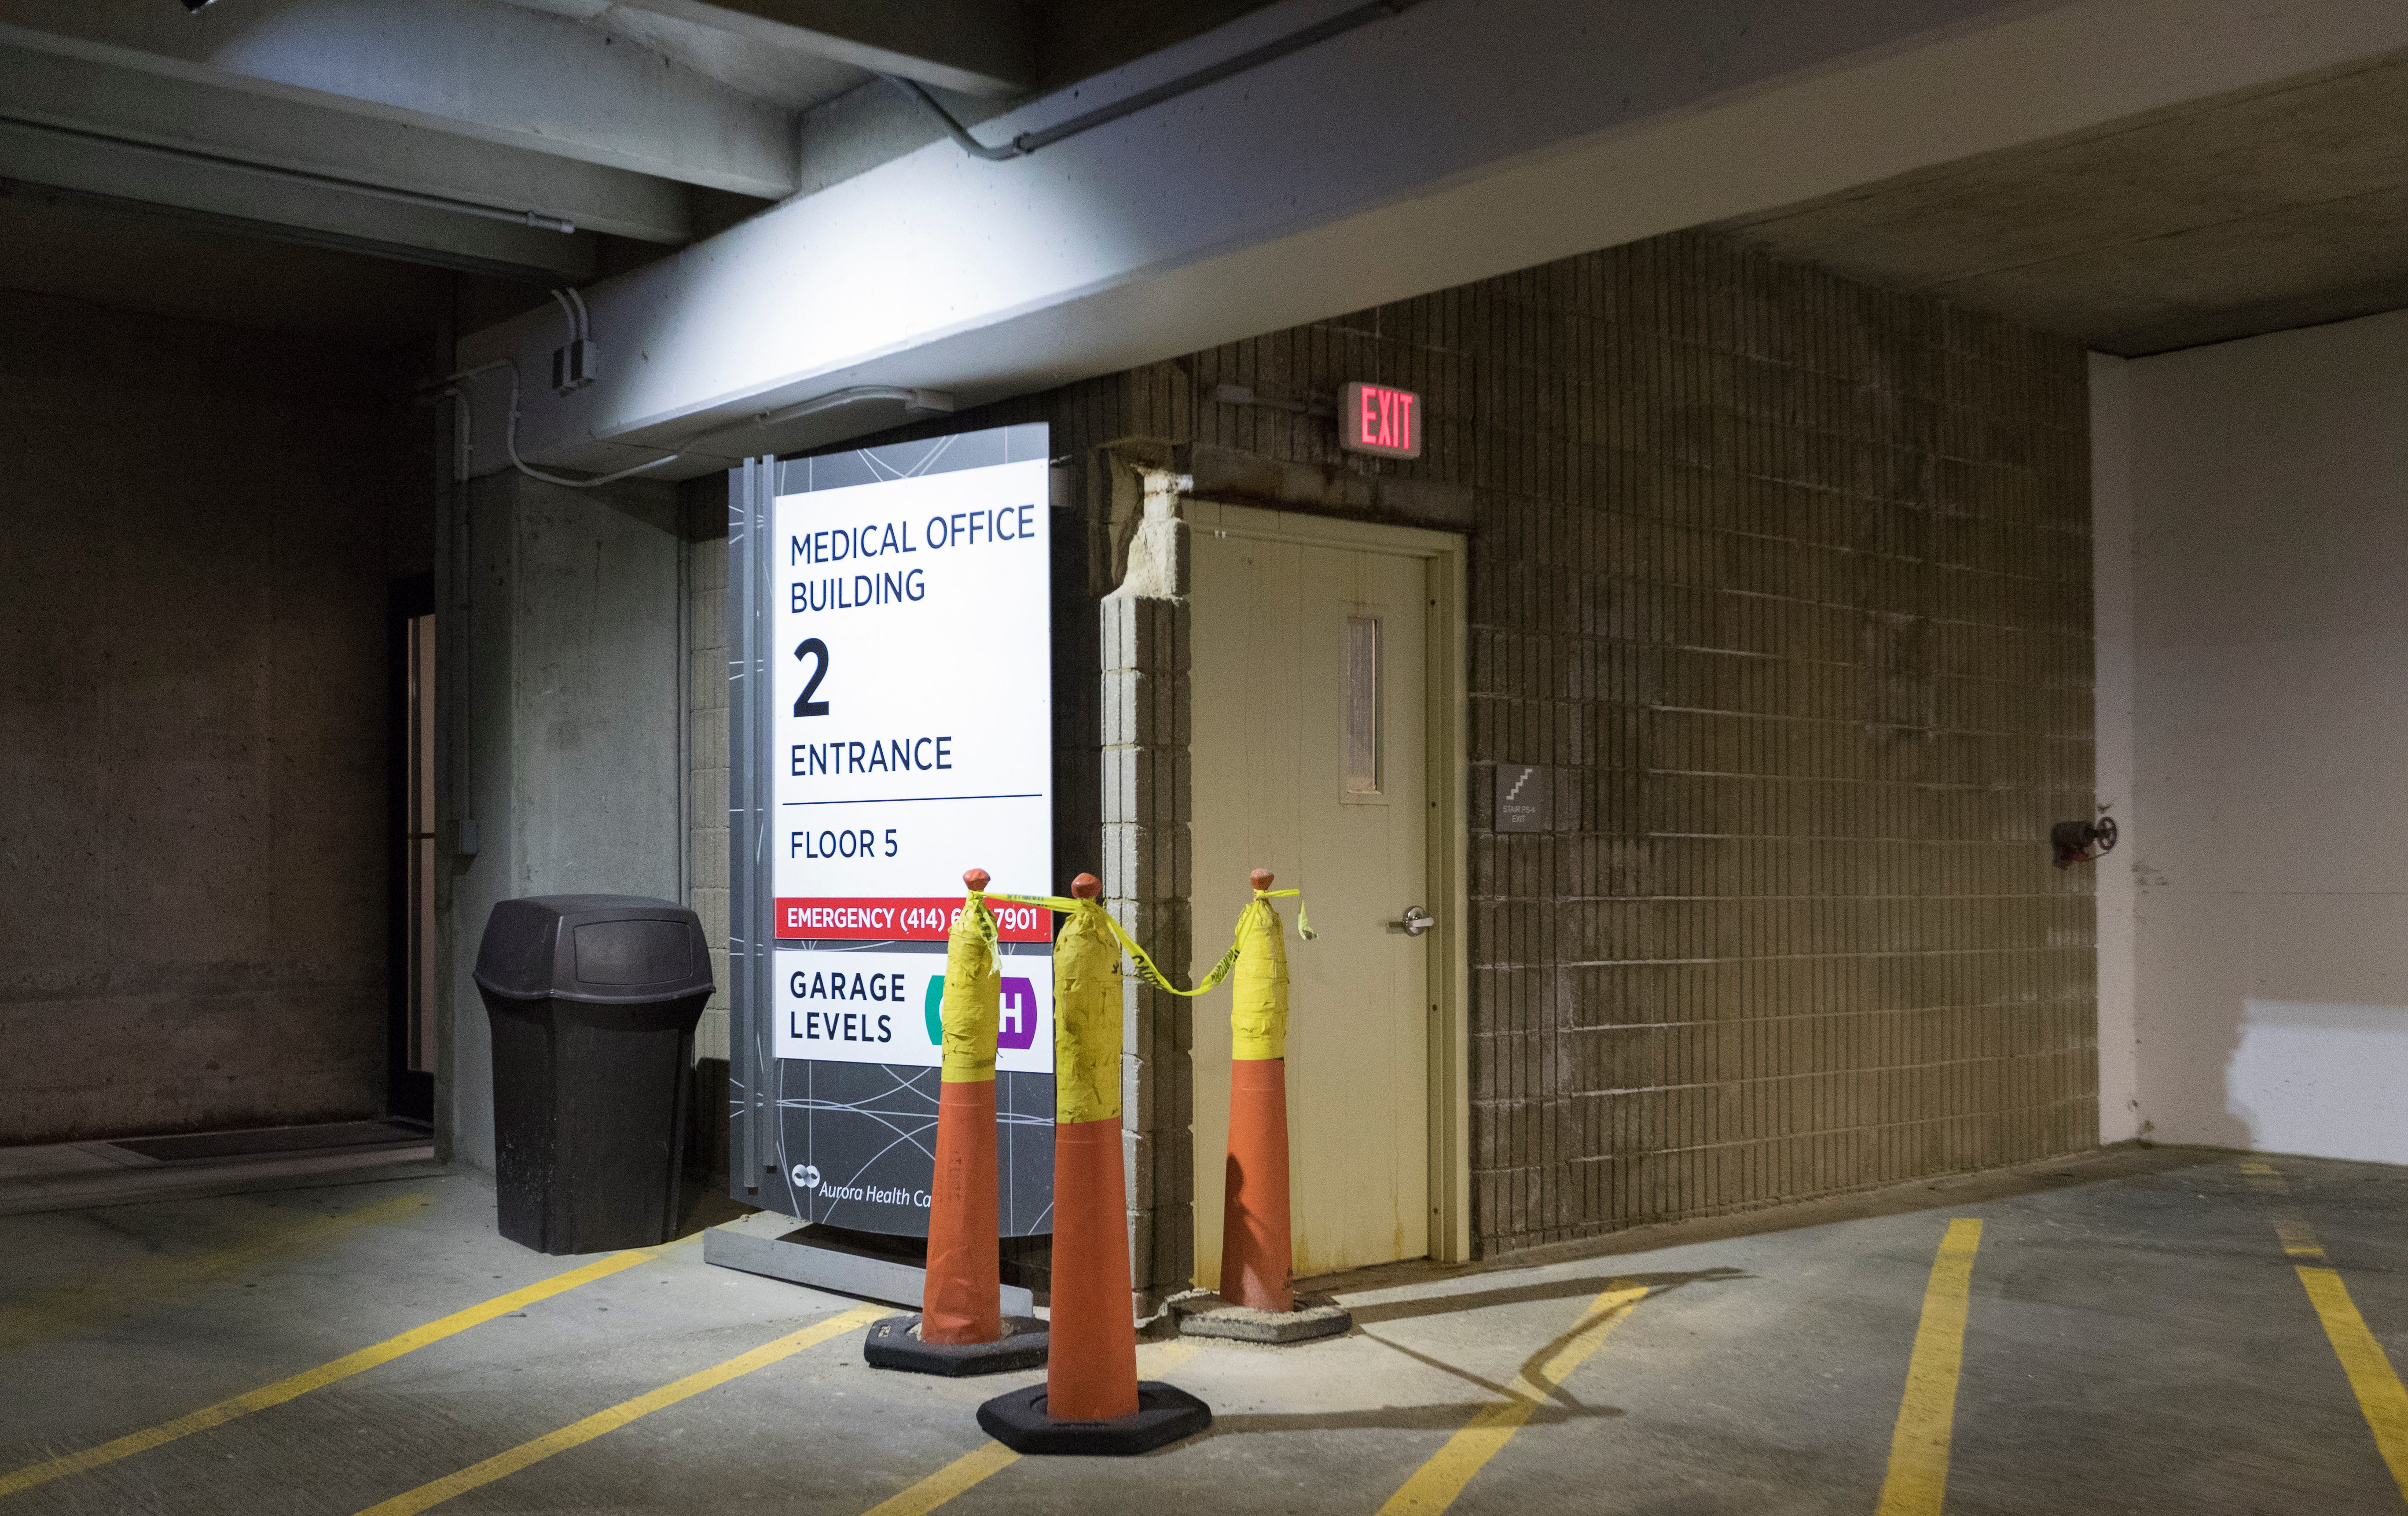 An enclosed stairwell exit with no emergency callbox or video camera is shown Monday, May 13, 2019 in an attached parking ramp at Aurora St Luke's Medical Center in Milwaukee, Wis. The Milwaukee Journal Sentinel enlisted the aid of an architectural security consultant to evaluate parking ramps at five Milwaukee hospitals.MARK HOFFMAN/MILWAUKEE JOURNAL SENTINEL